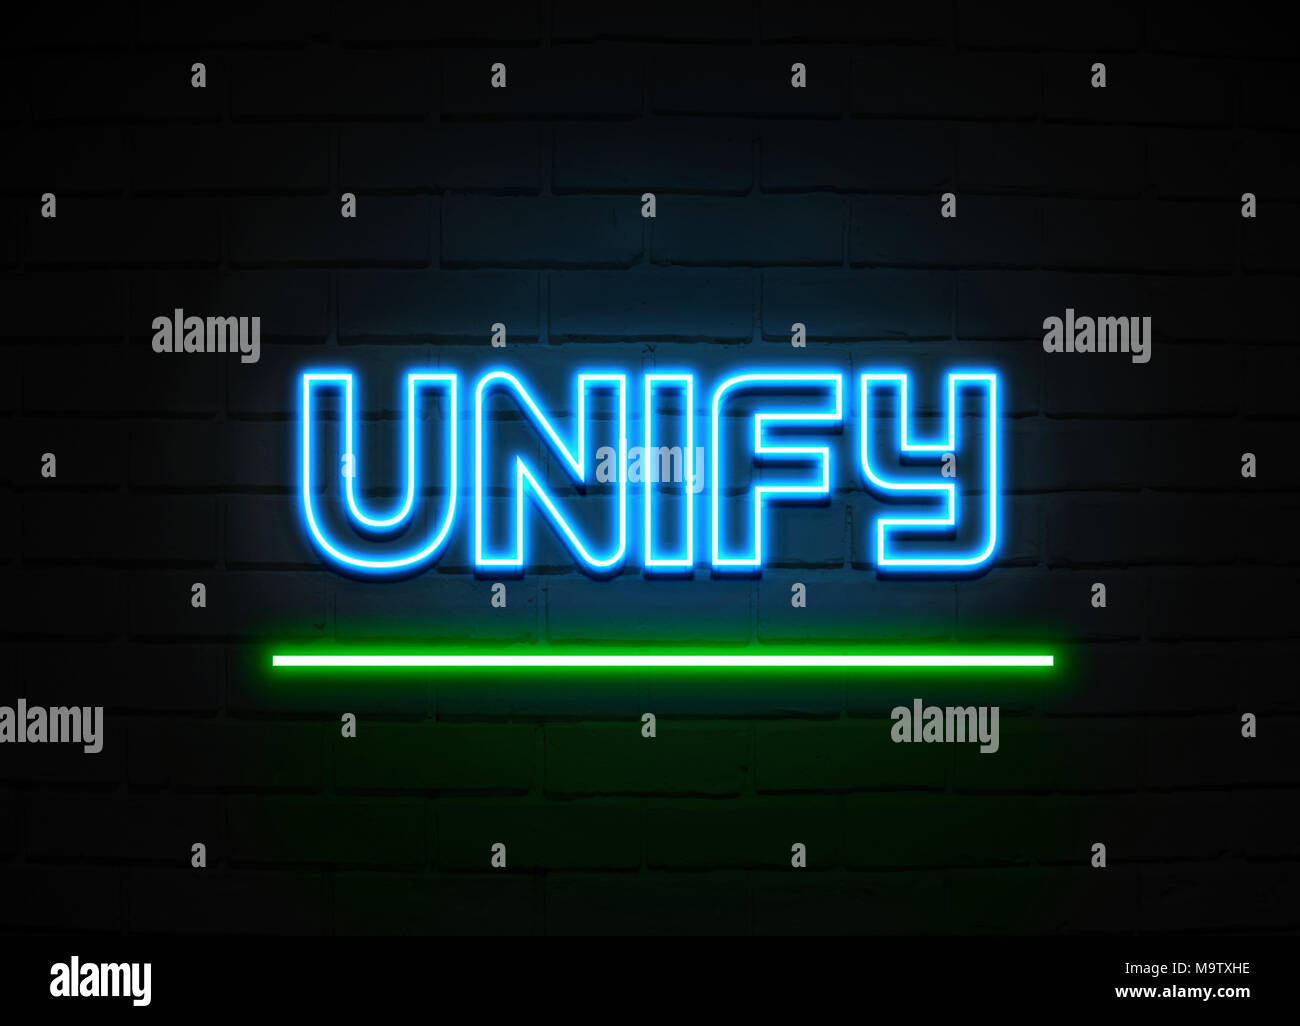 Unify neon sign - Glowing Neon Sign on brickwall wall - 3D rendered royalty free stock illustration. - Stock Image